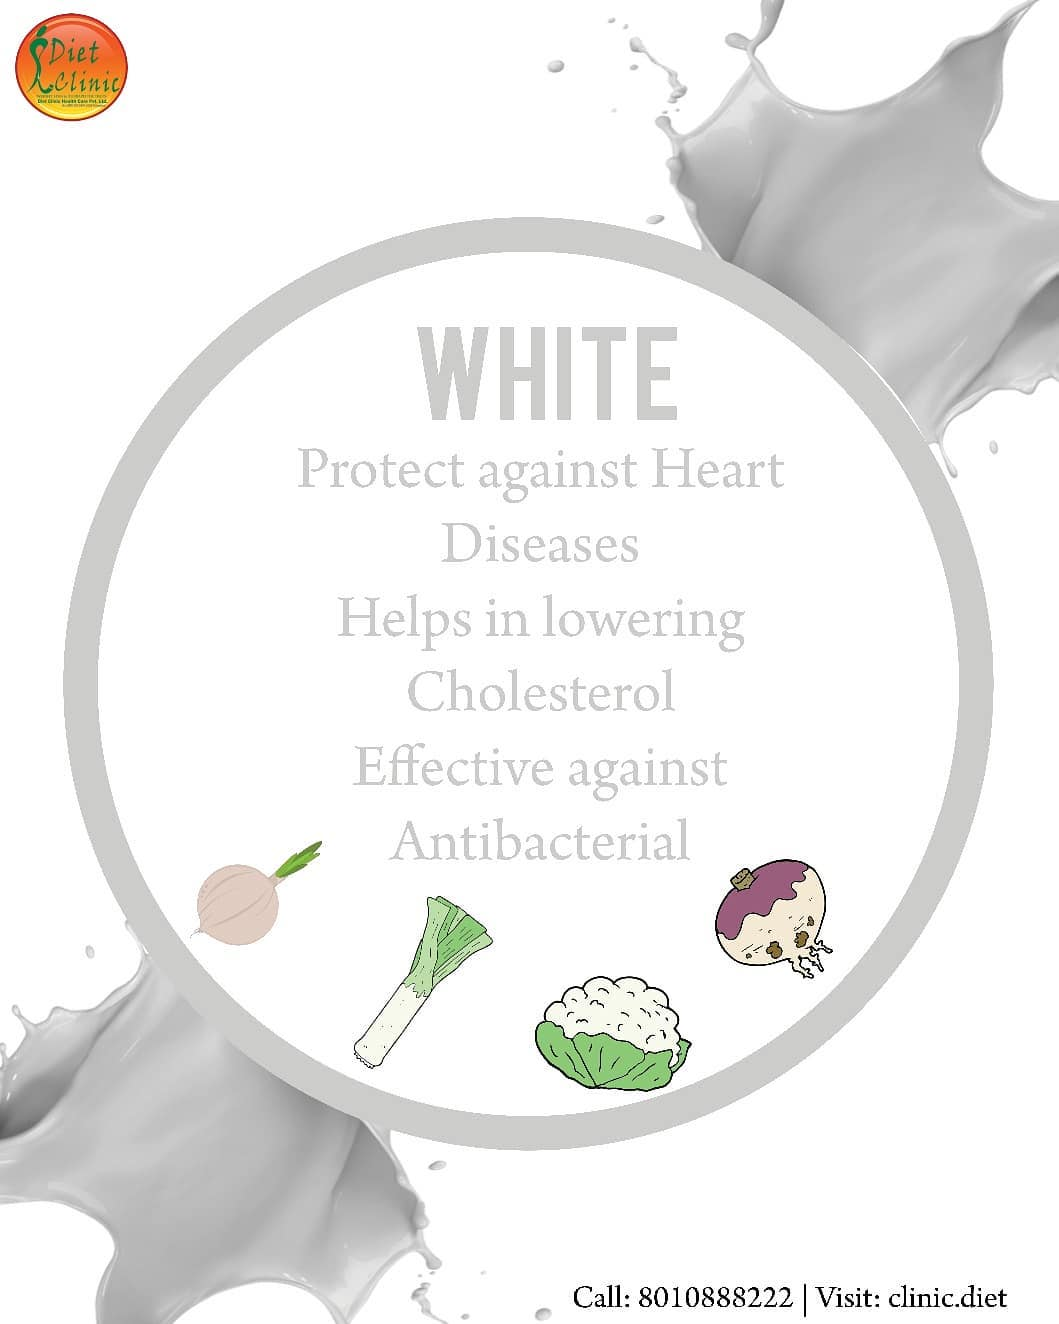 Benefits of White Types Food